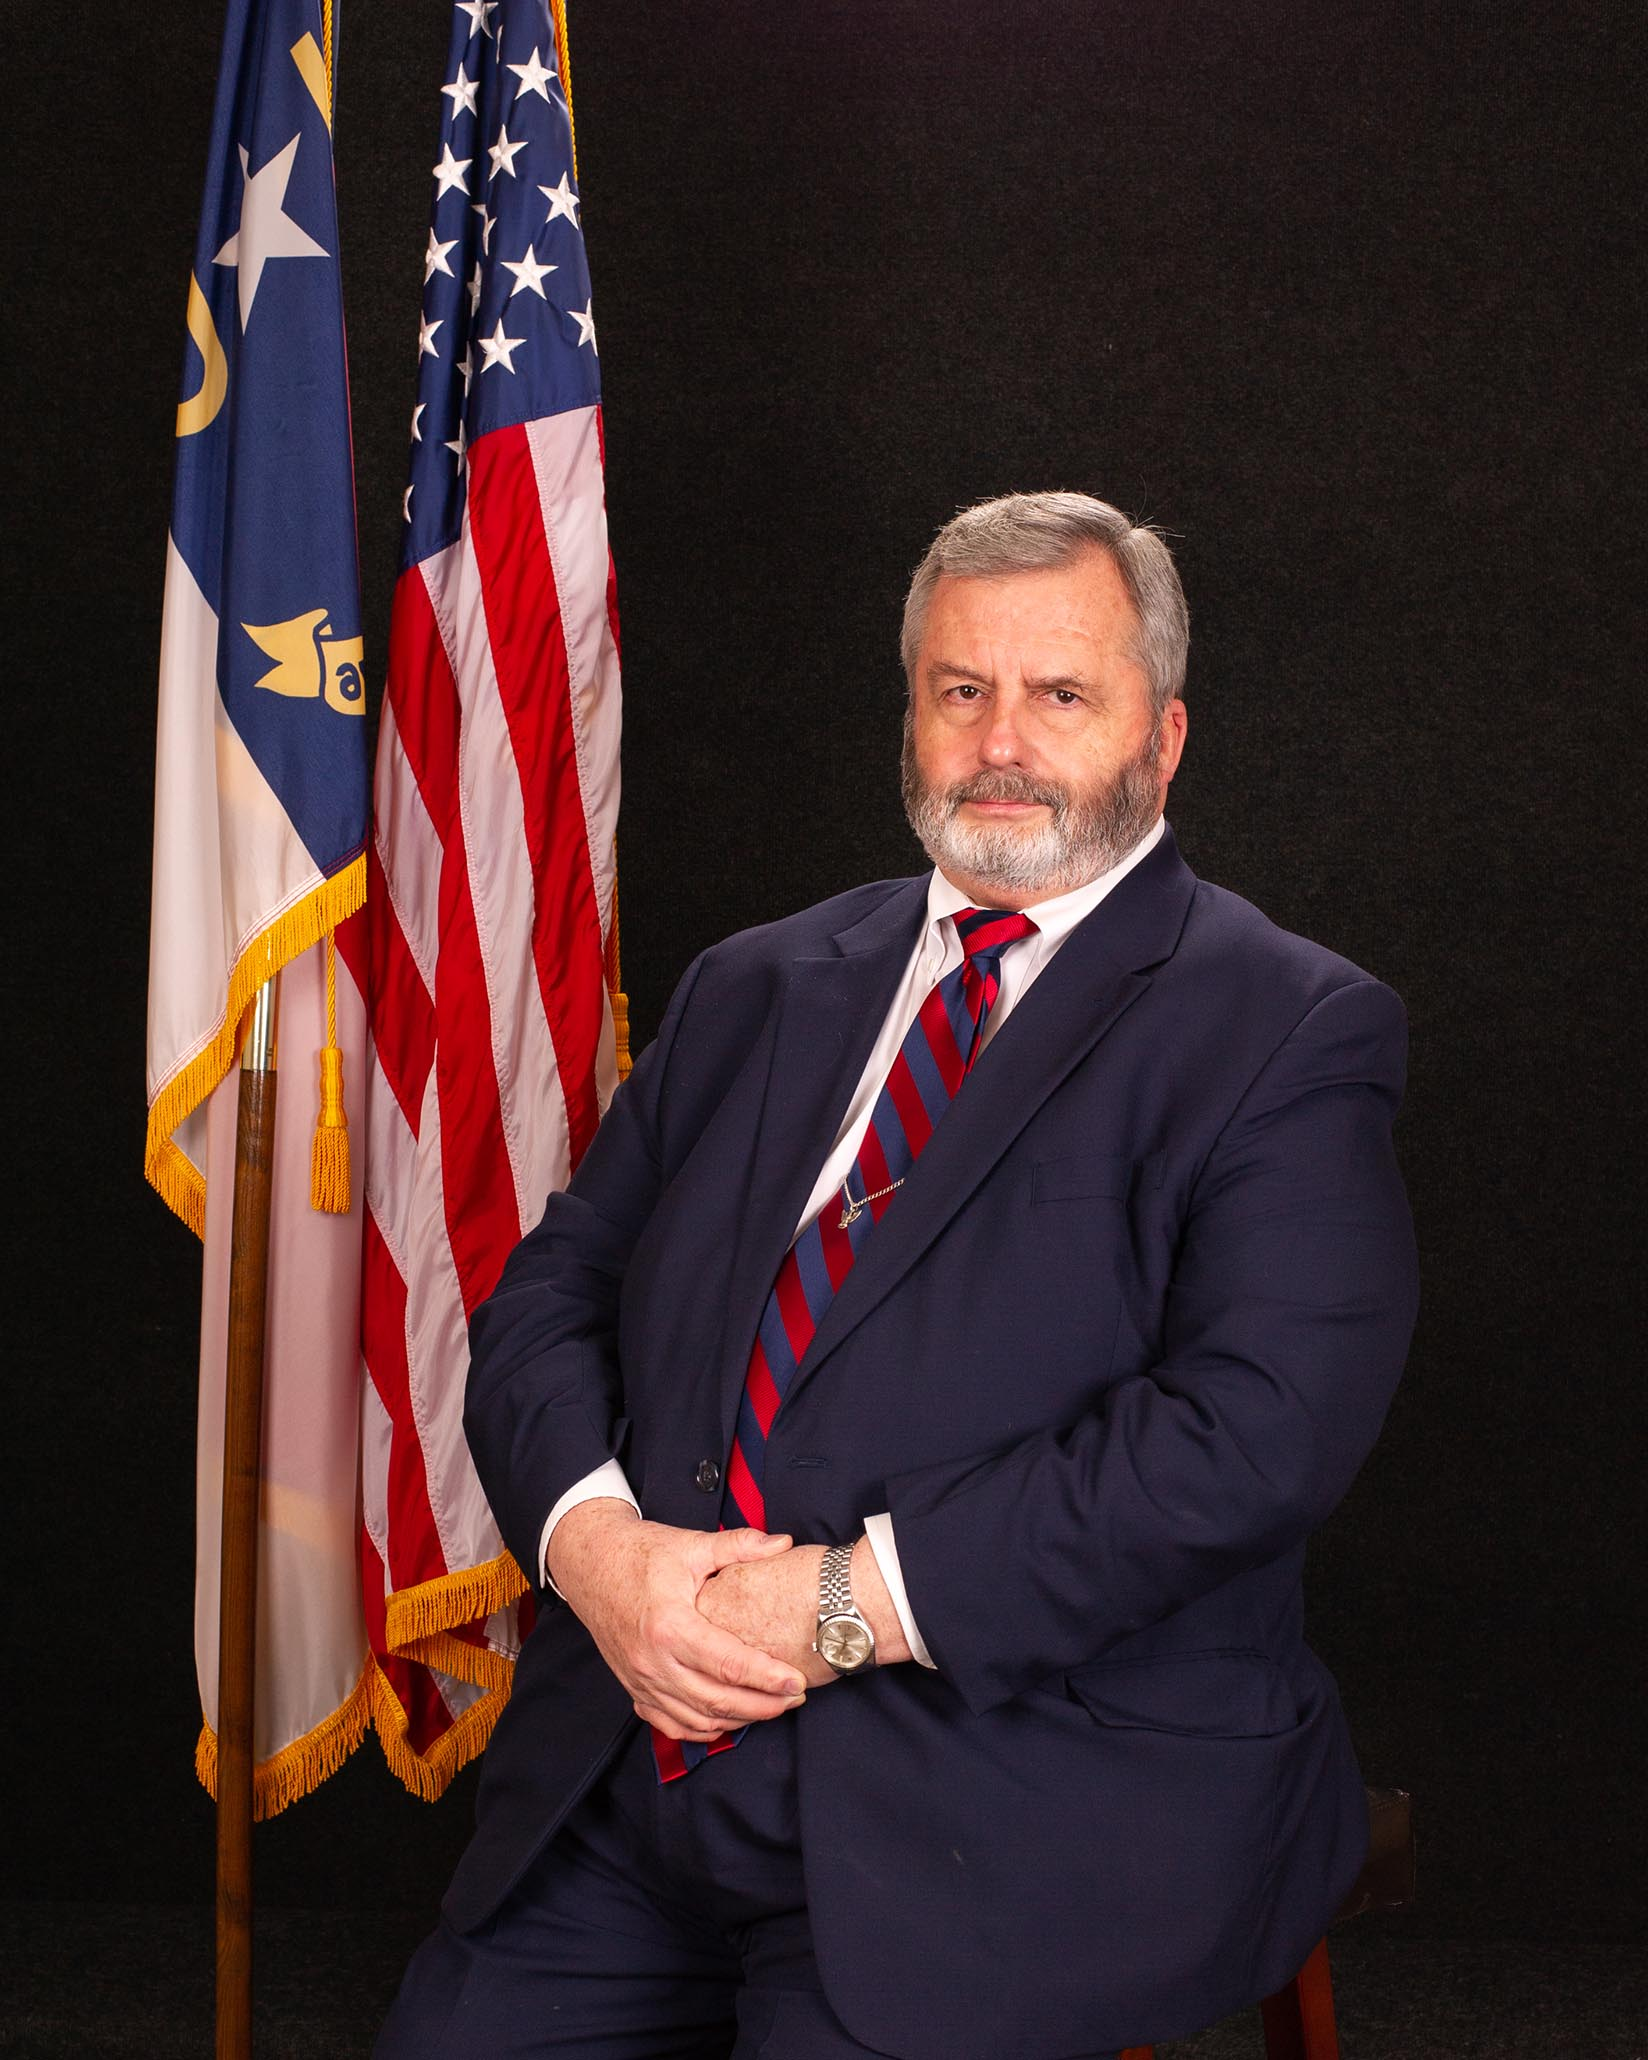 James Reid (J.R.) Simpson, II, County Attorney